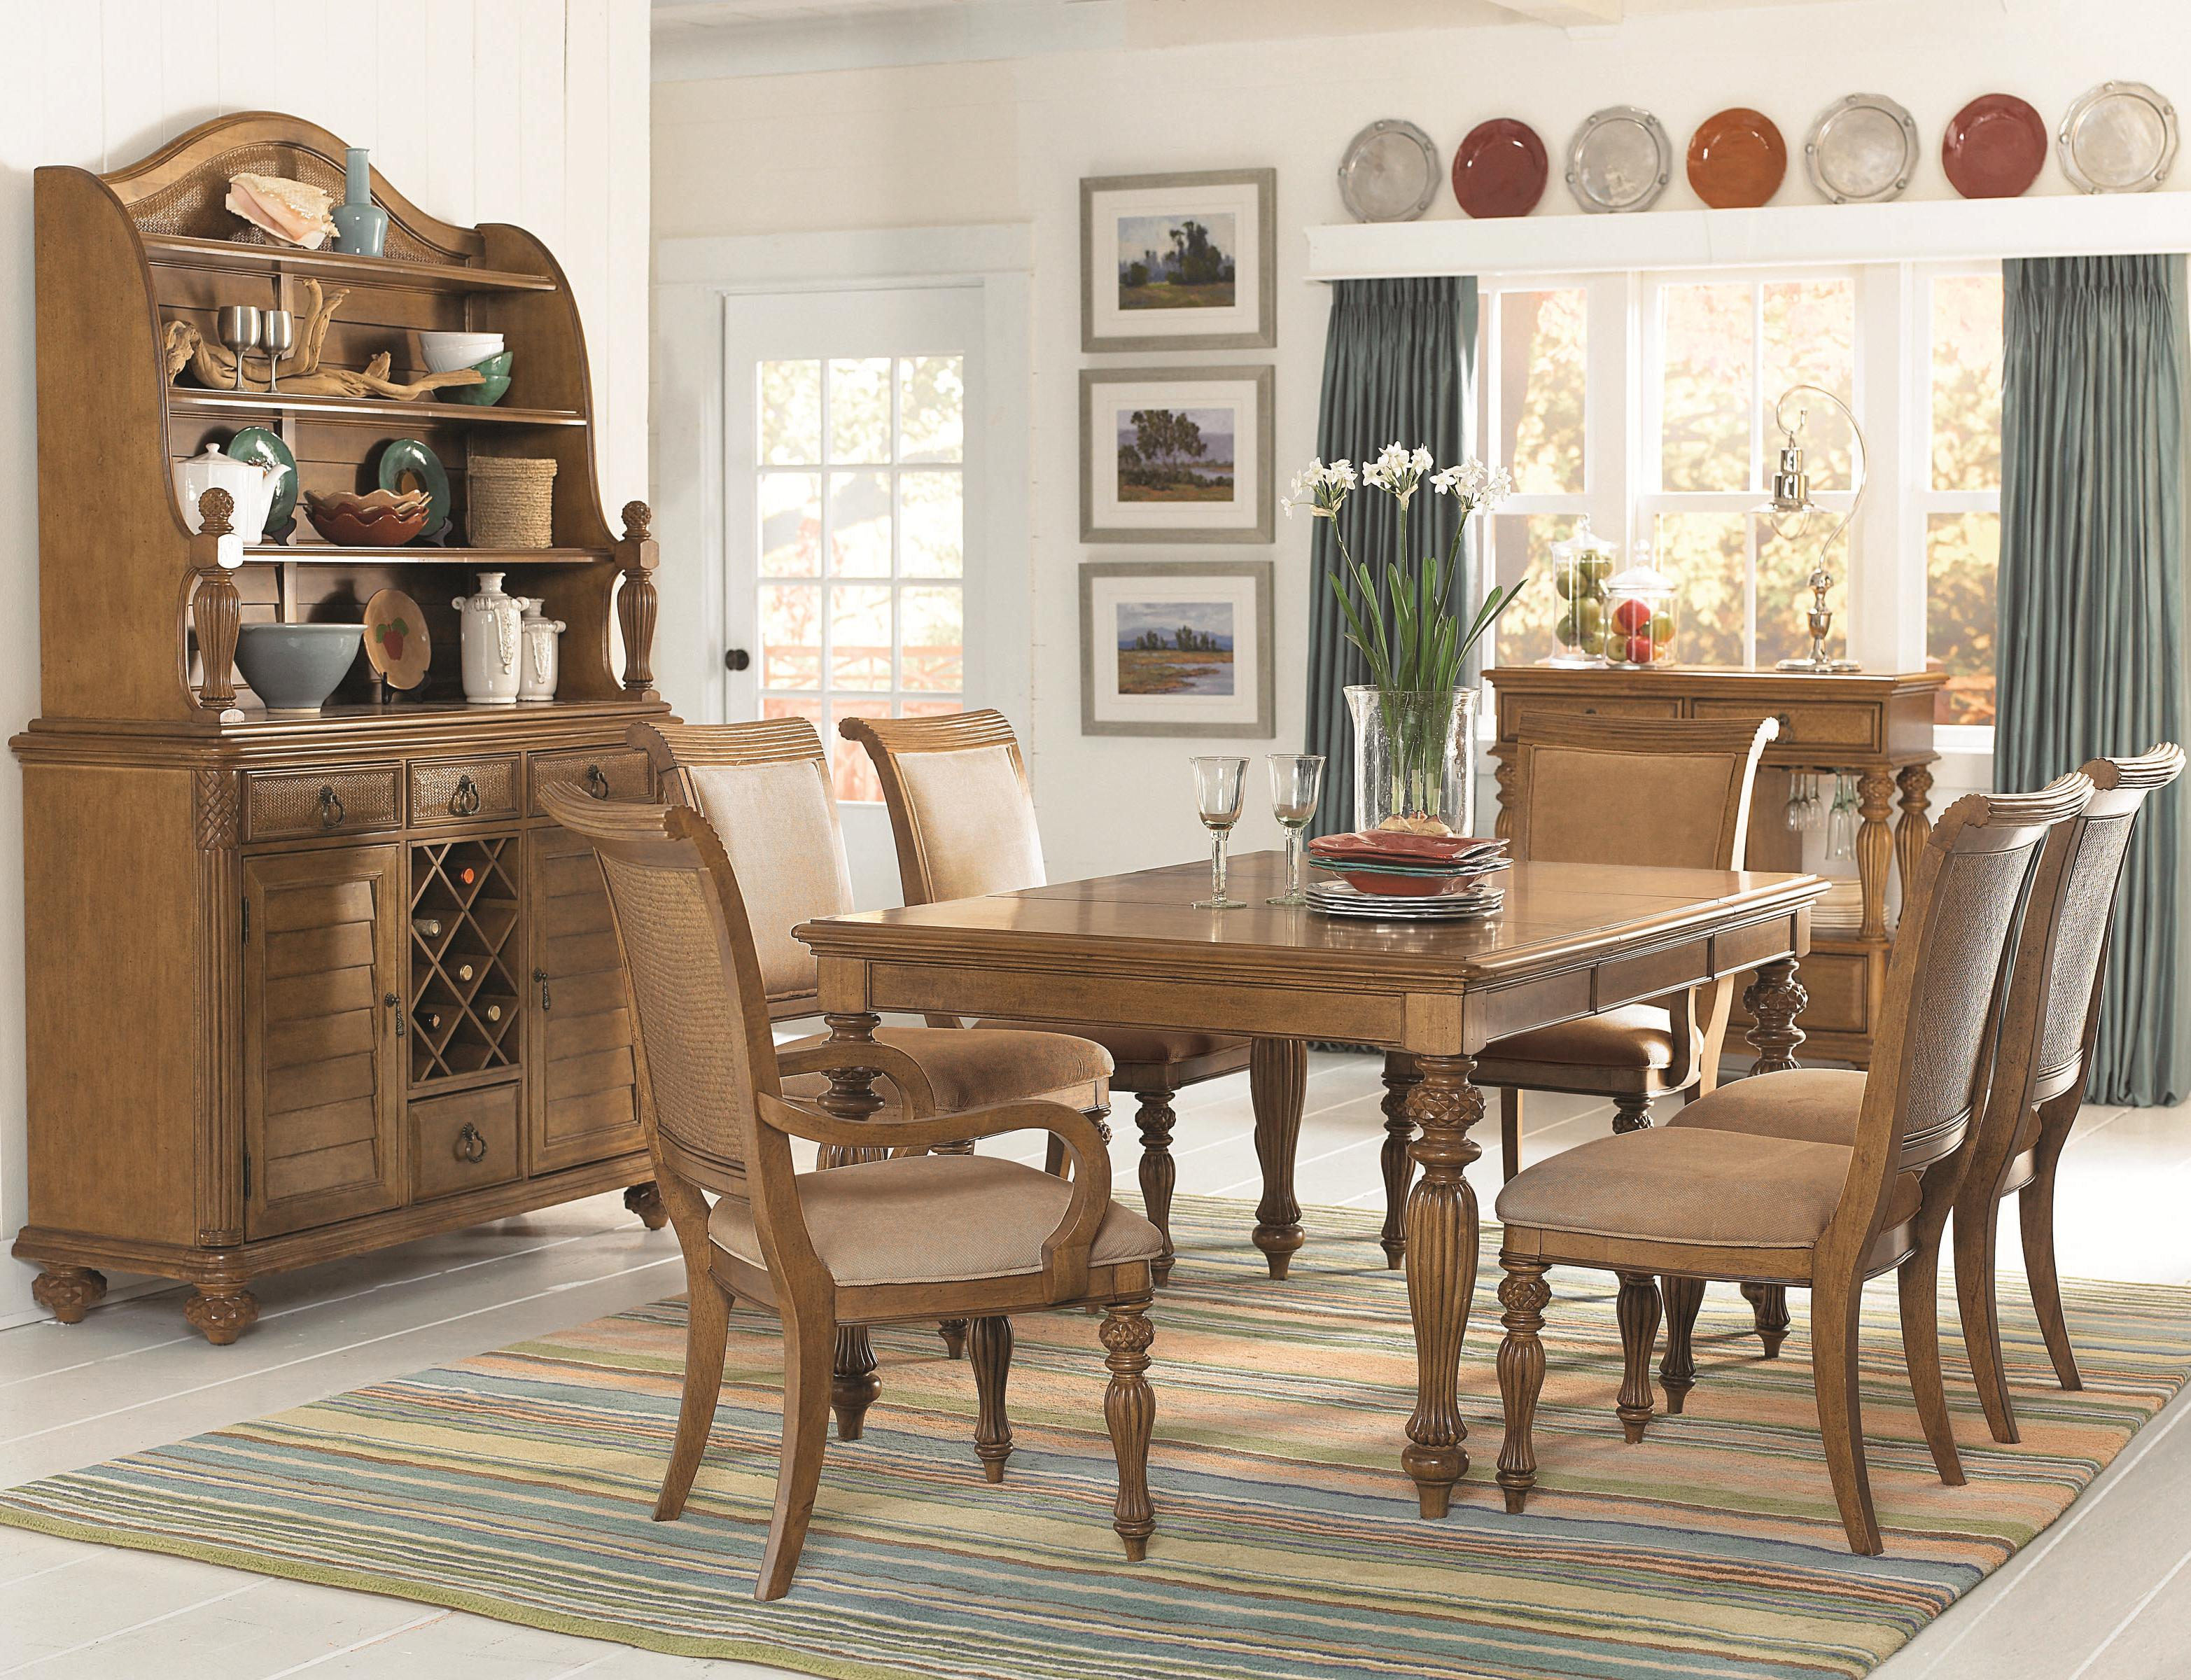 Island Inspired Rectangular Turned Leg Dining Table with Carving Details    Two 20  LeavesIsland Inspired Rectangular Turned Leg Dining Table with Carving  . Pineapple Pedestal Dining Table And Chairs. Home Design Ideas